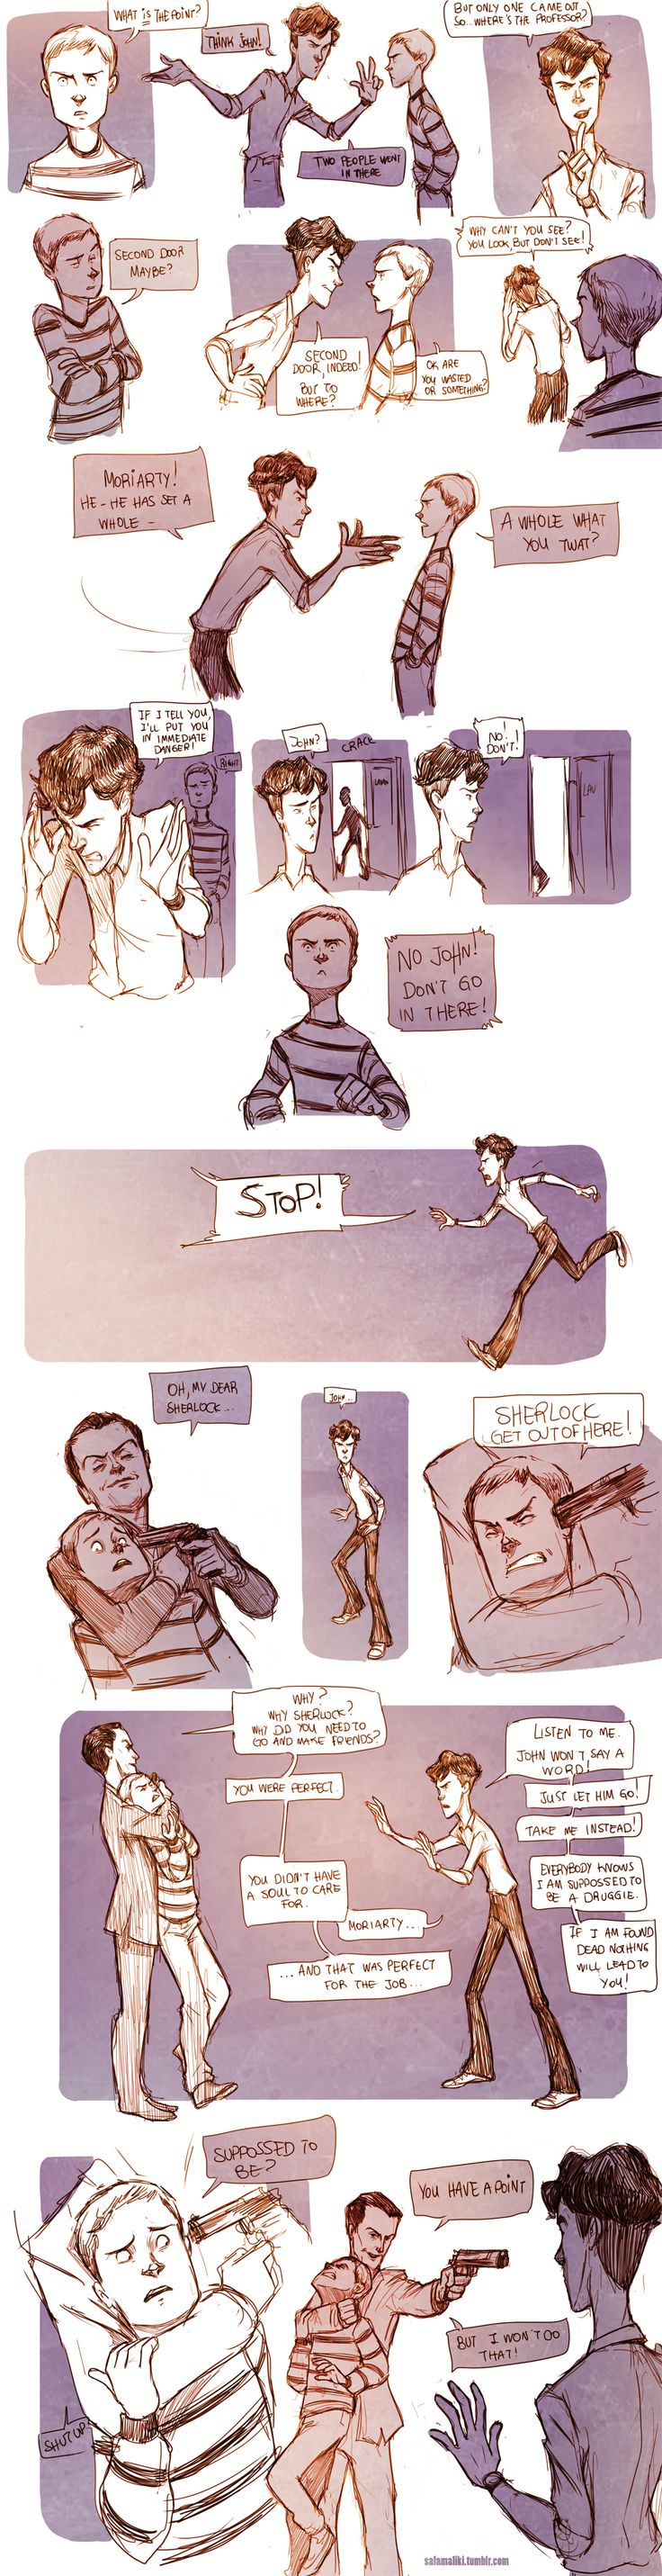 Teen Sherlock- The Boomerang Pt3 by DrSlug on DeviantArt